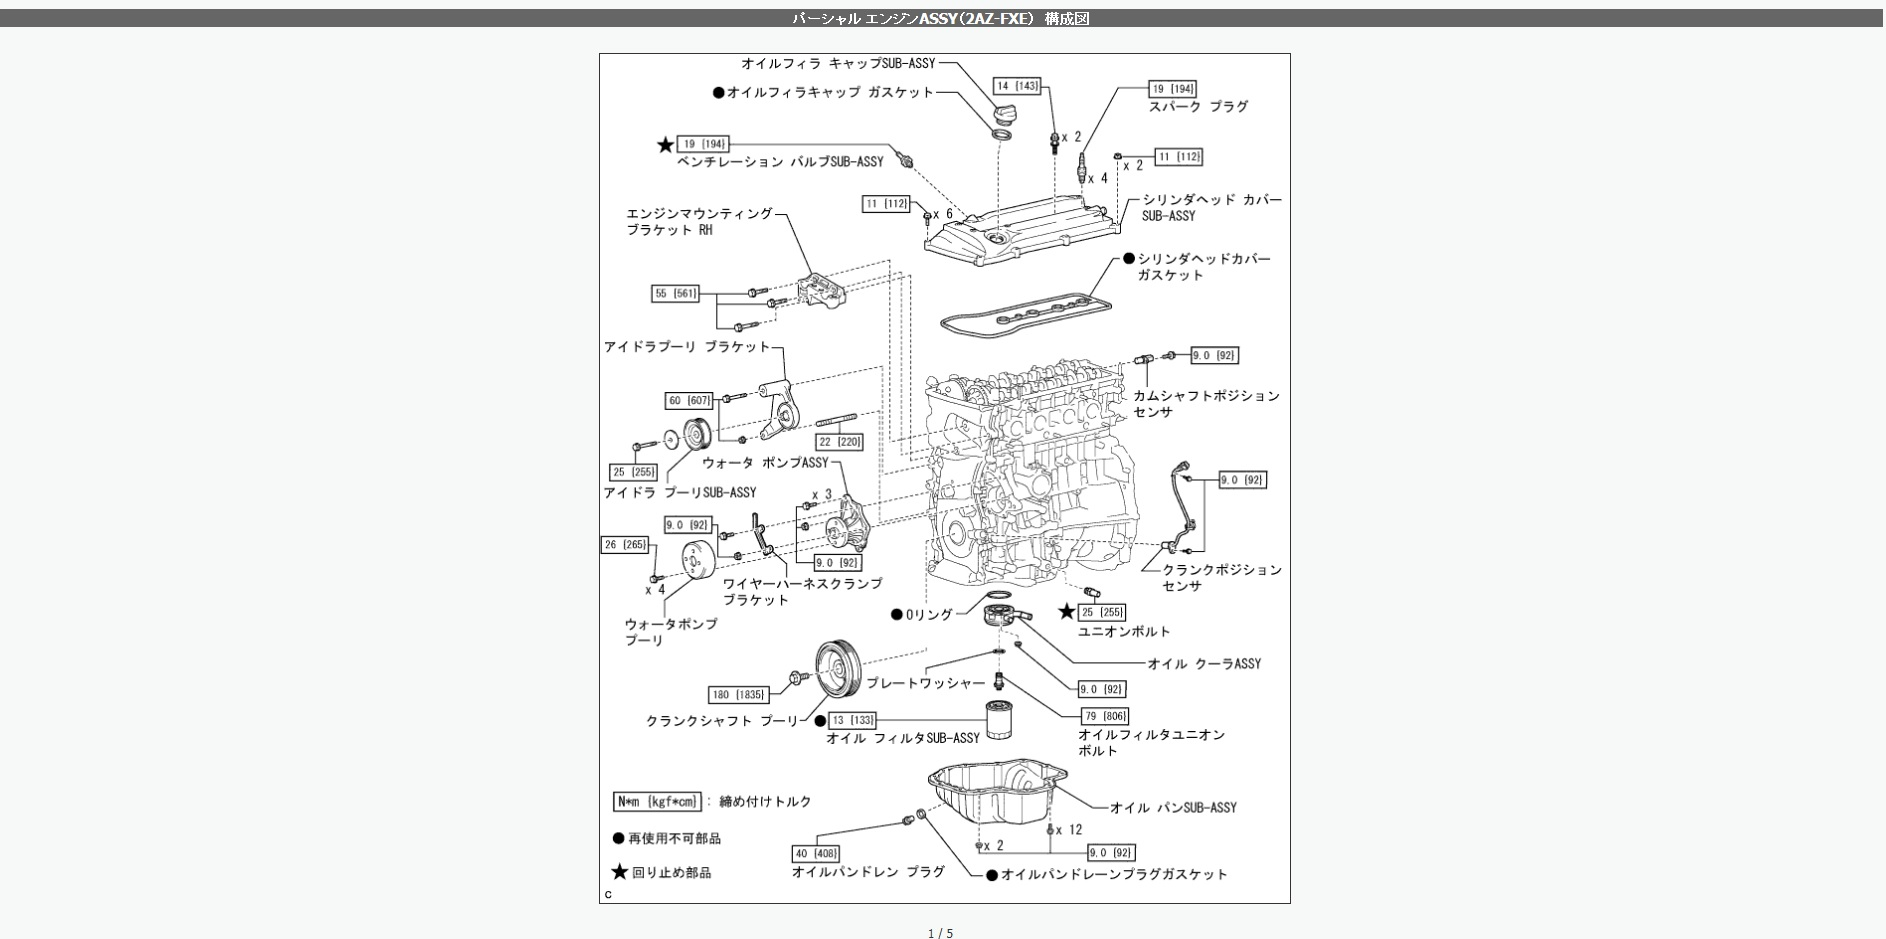 Translation status: Already translated: - The table of contents. - EWD (wiring  diagrams) - Engine, HV and battery trouble codes charts